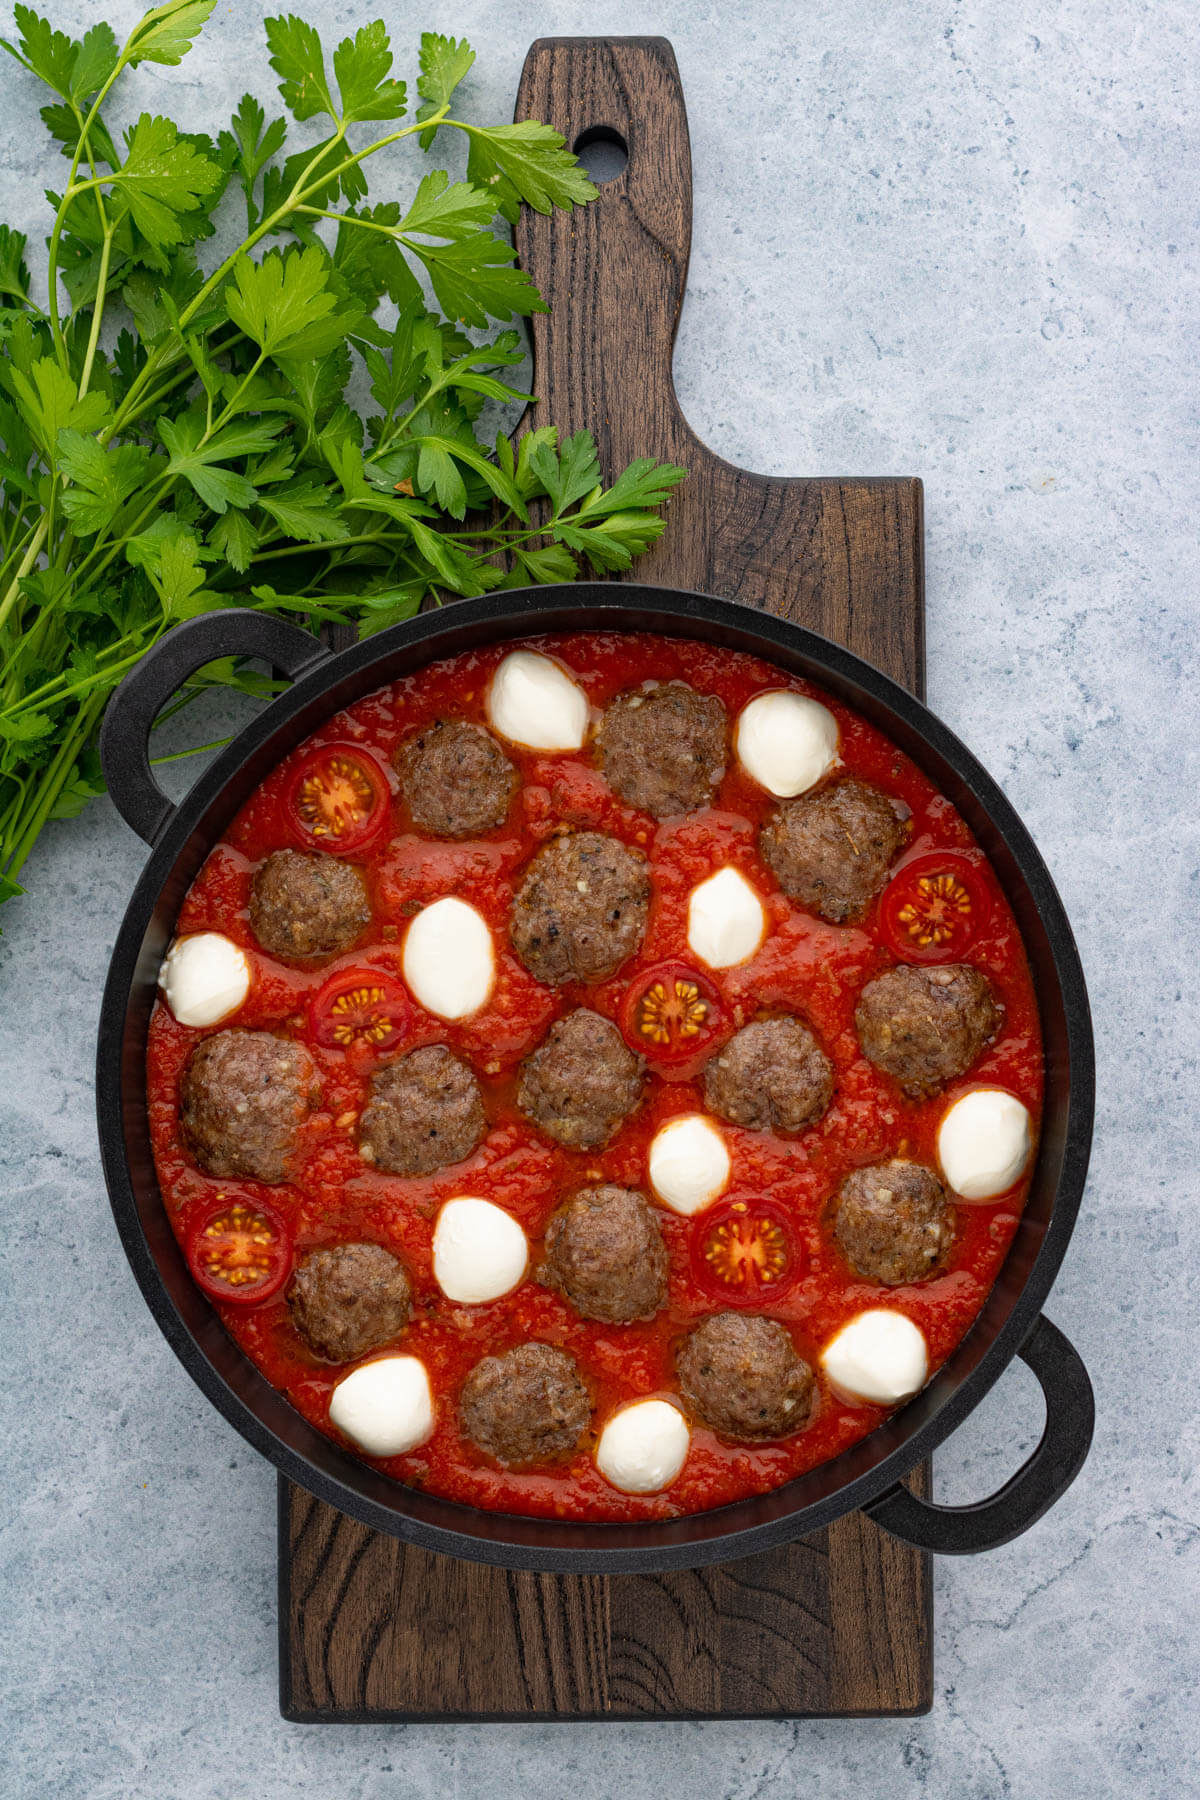 A pan of Oven Baked Meatballs in a rich tomato sauce with cherry tomato halves and bocconcini ready to bake in the oven.